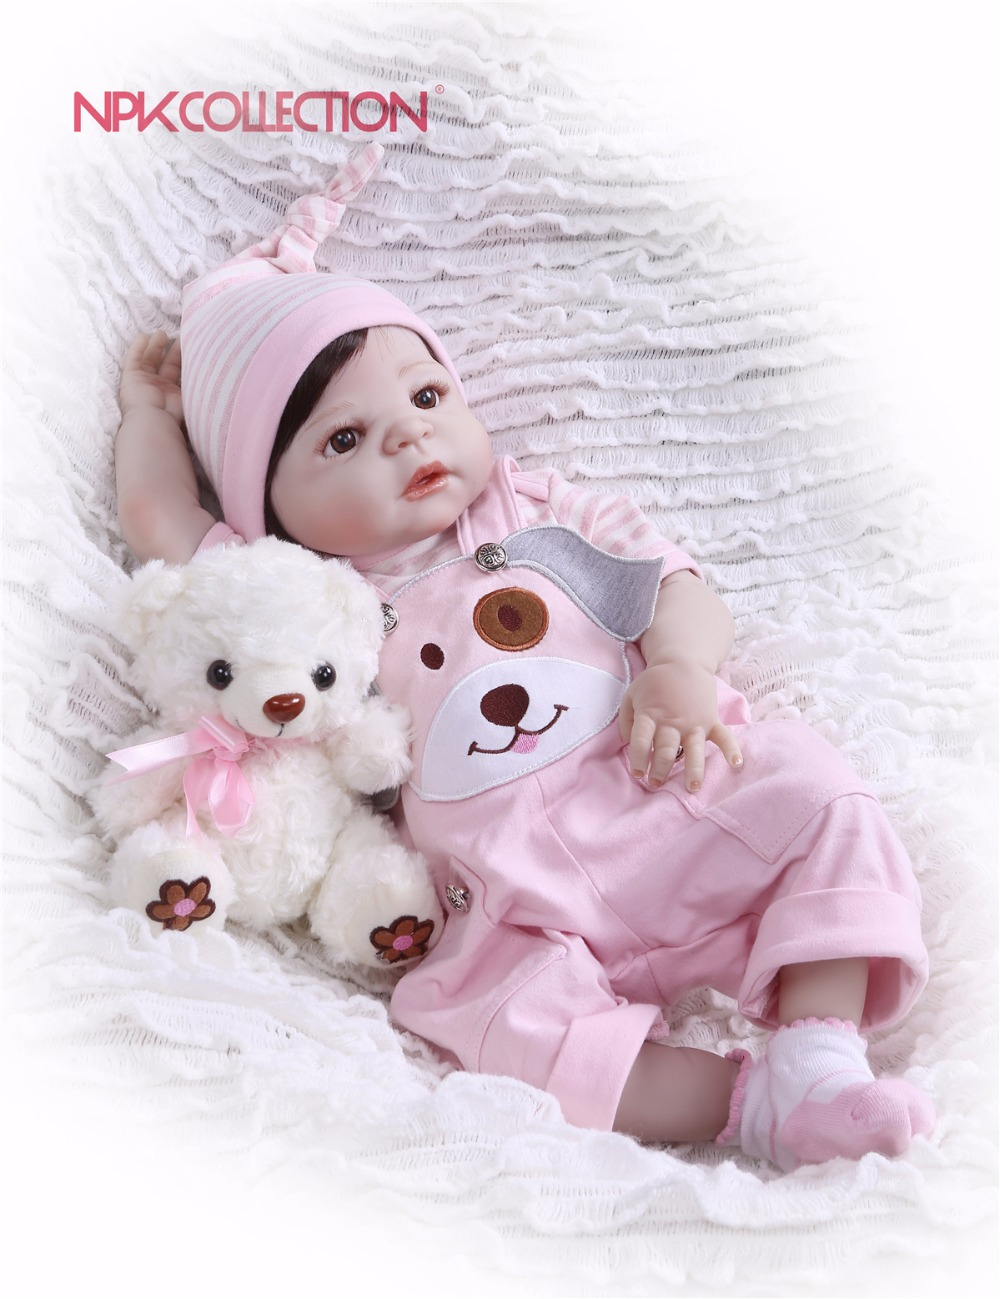 NPKCOLLECTION New Arrival pink Baby Doll Full Silicone Body Lifelike Bebe Reborn Princess Girl Doll Handmade Baby Toy Kids Gifts new arrival 23 57cm baby girl doll full silicone body lifelike bebe reborn bonecas handmade baby toy for kids christmas gifts